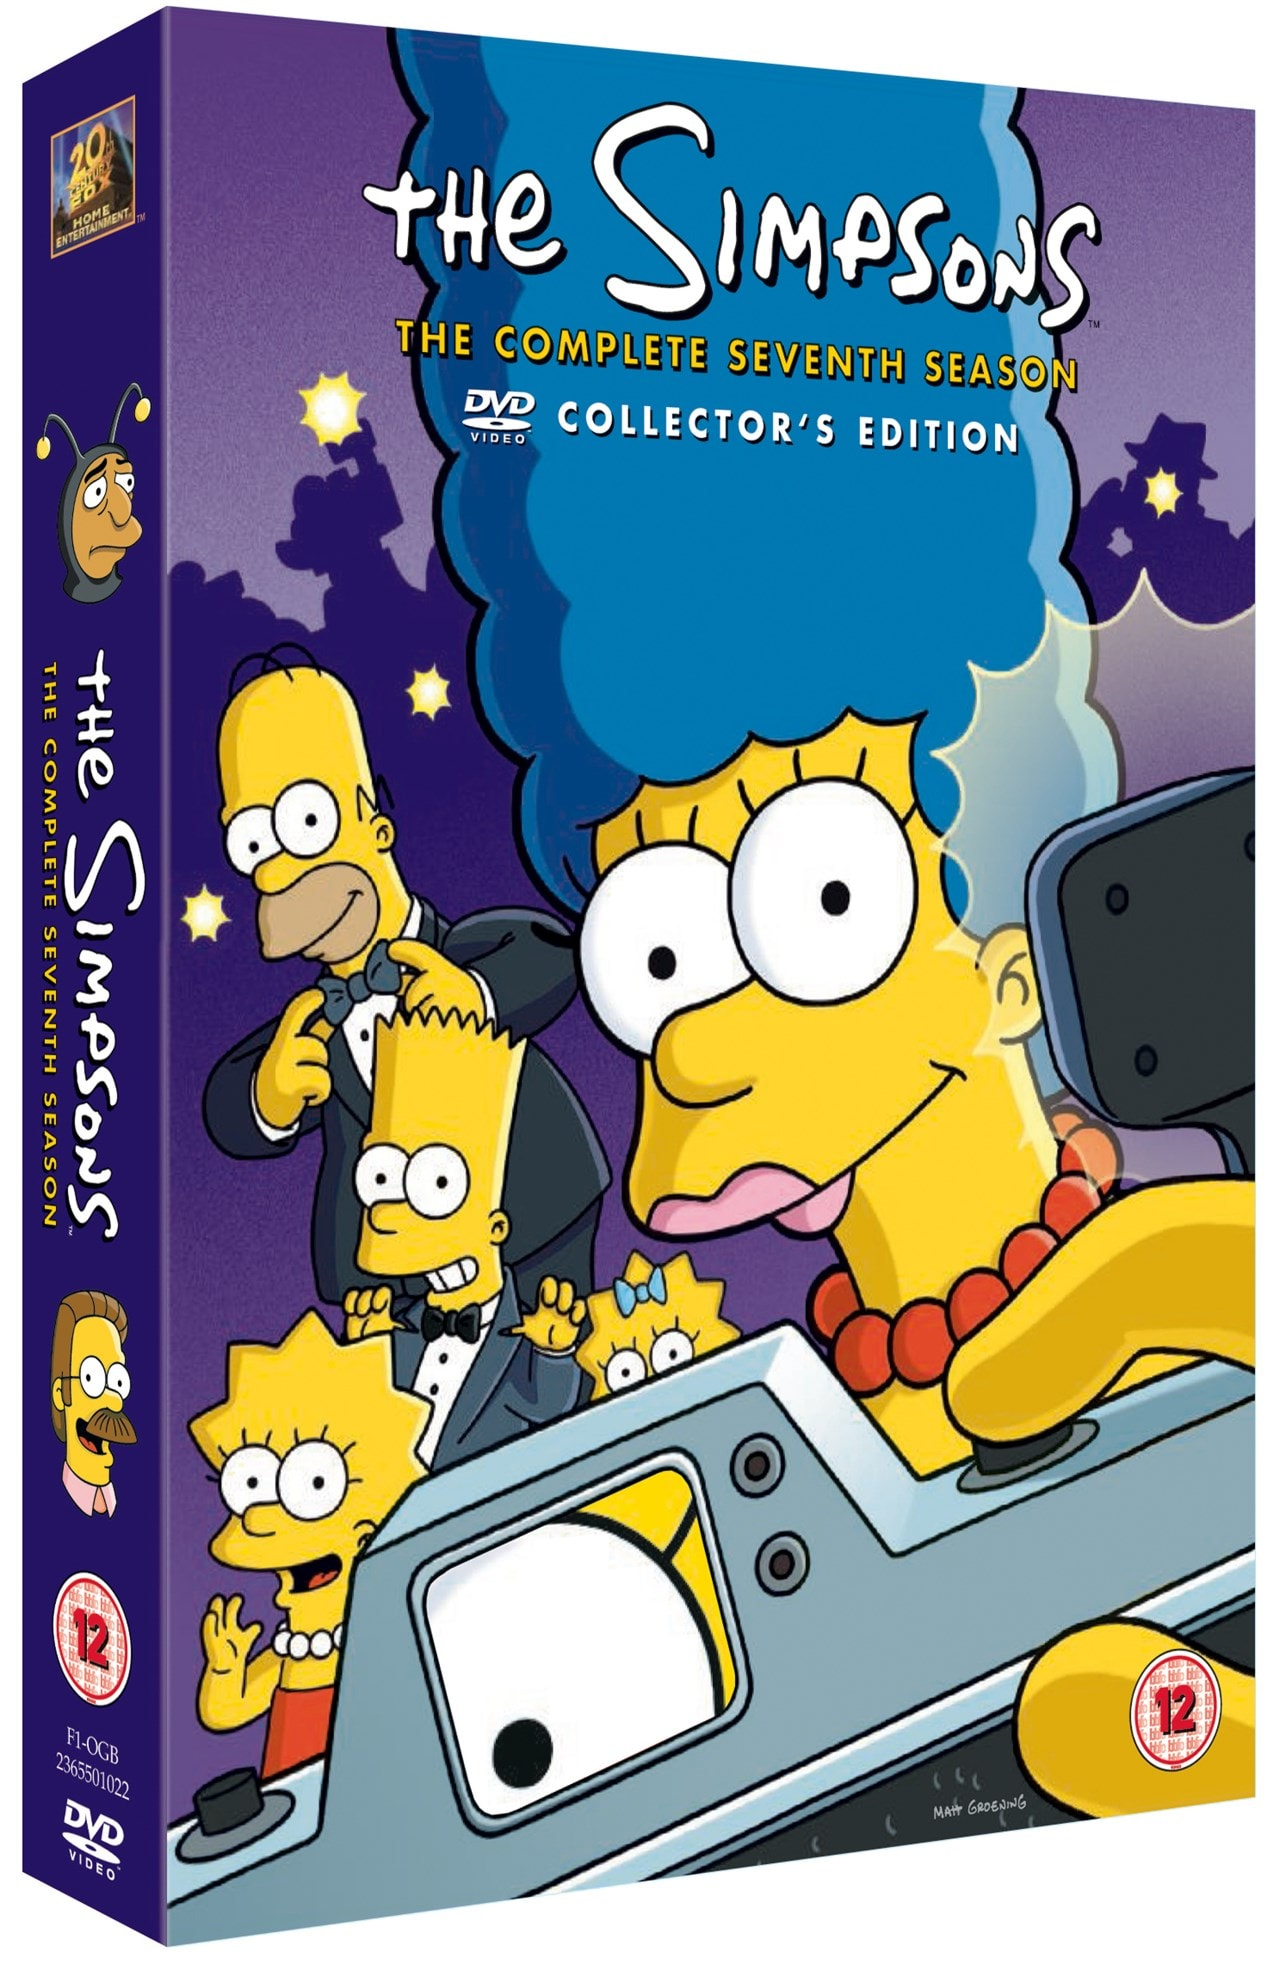 The Simpsons: The Complete Seventh Season - 2